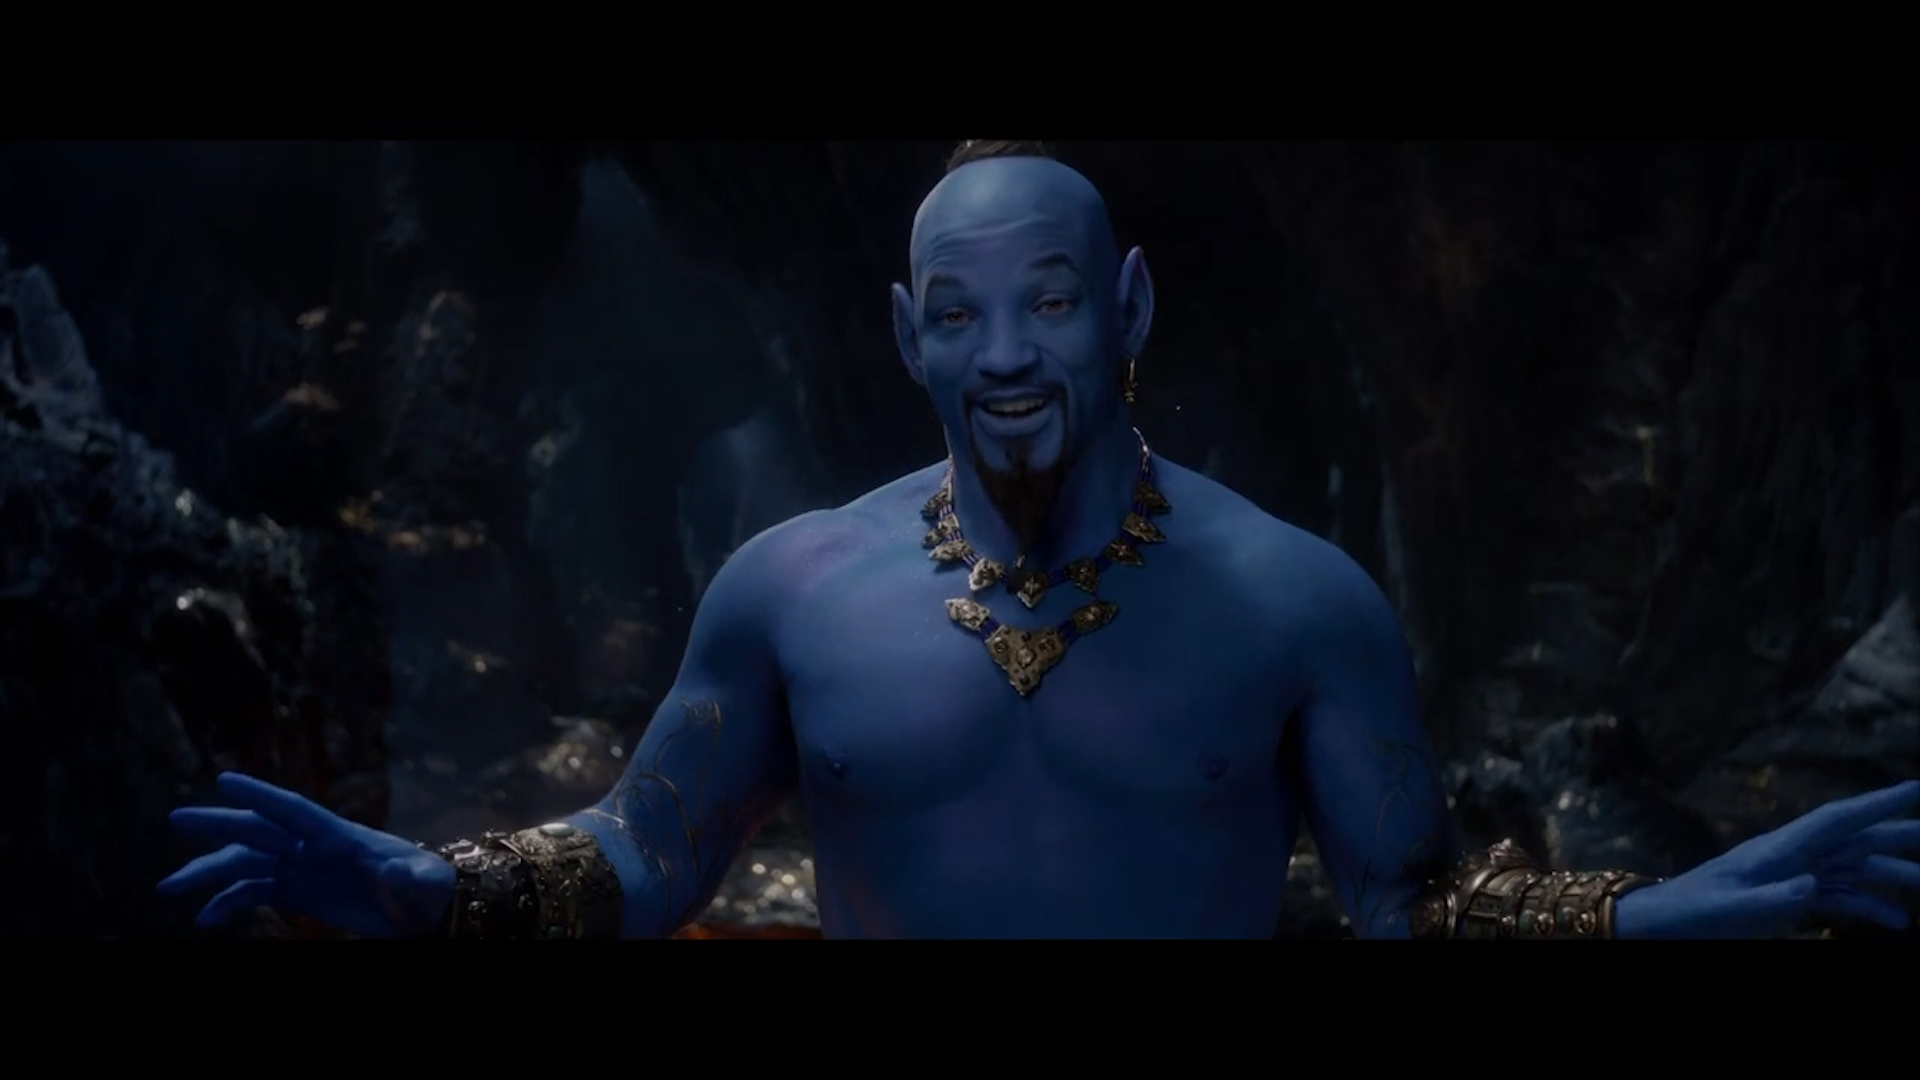 Disney teases new 'Aladdin' trailer, unveils Will Smith's 'Genie' avatar